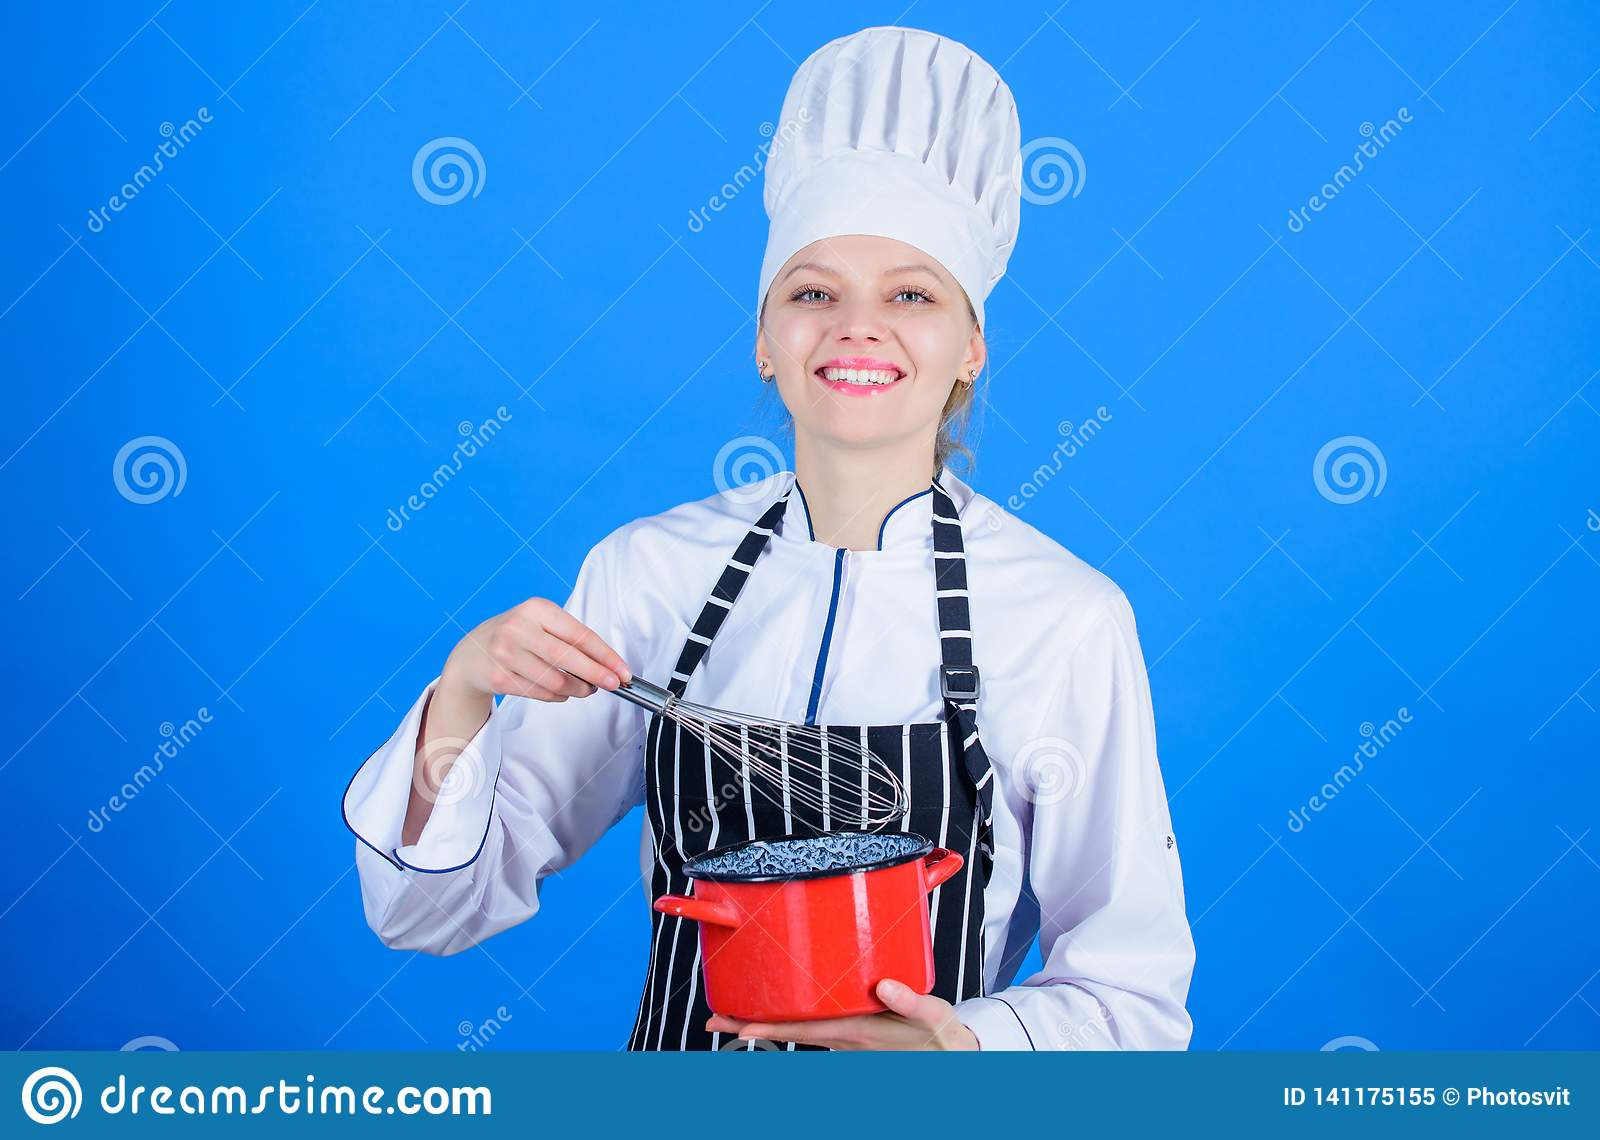 Whipping cream tips and tricks. Woman professional chef hold whisk and pot. Whipping like pro. Girl in apron whipping